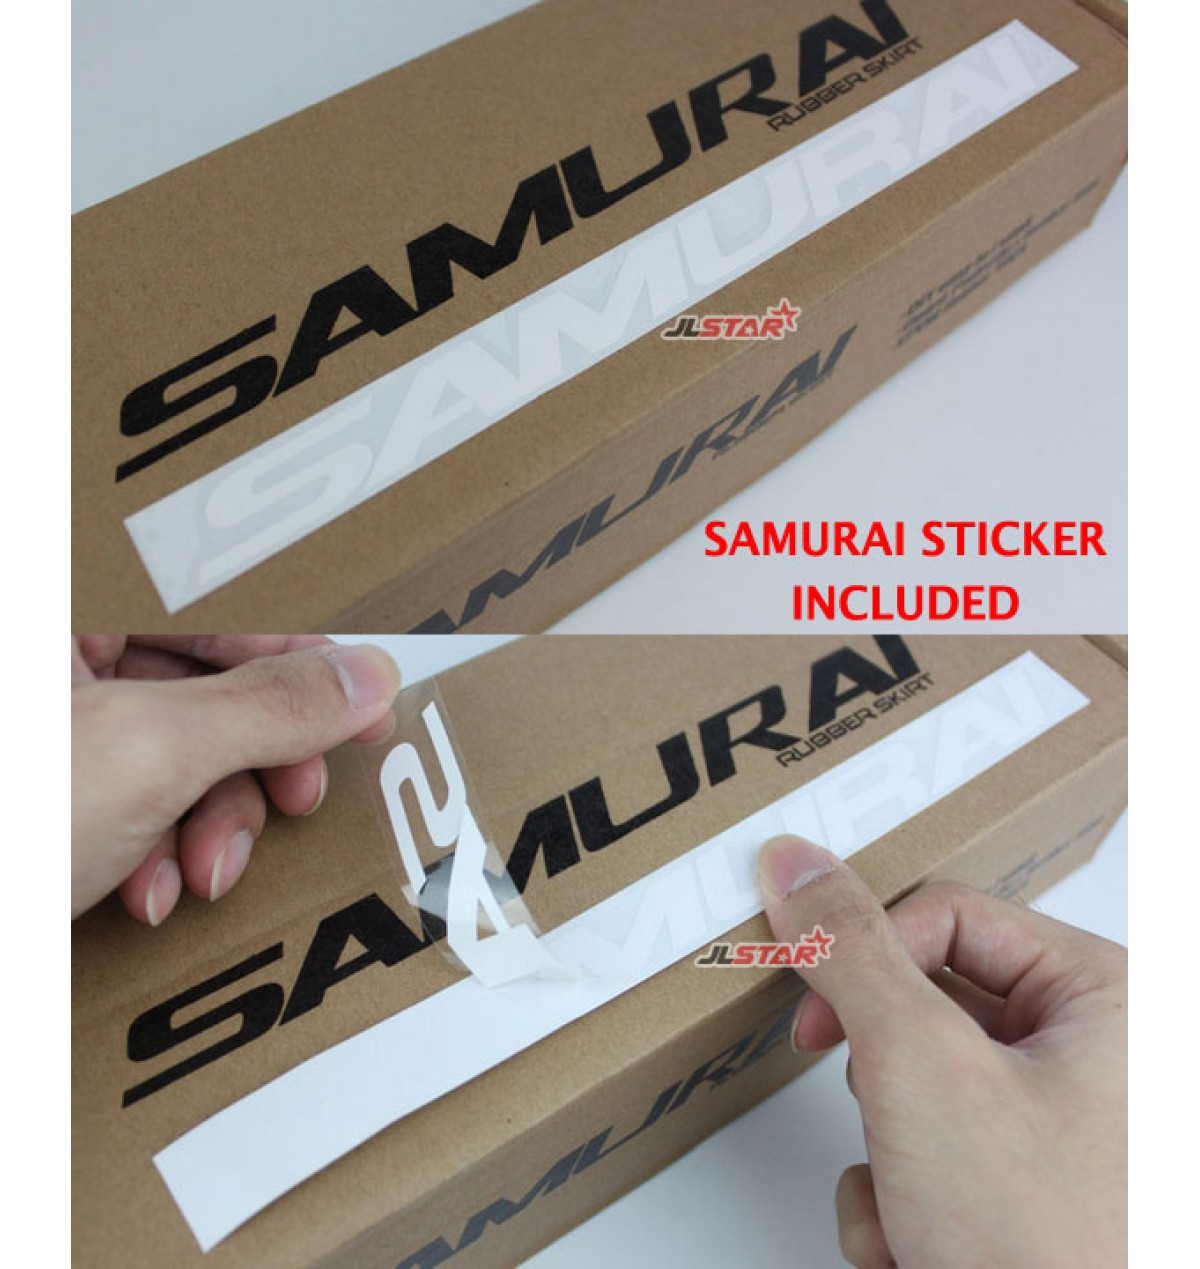 SAMURAI RUBBER SKIRT CAR FRONT LIP BUMPER RUBBER STRIP - CARBON